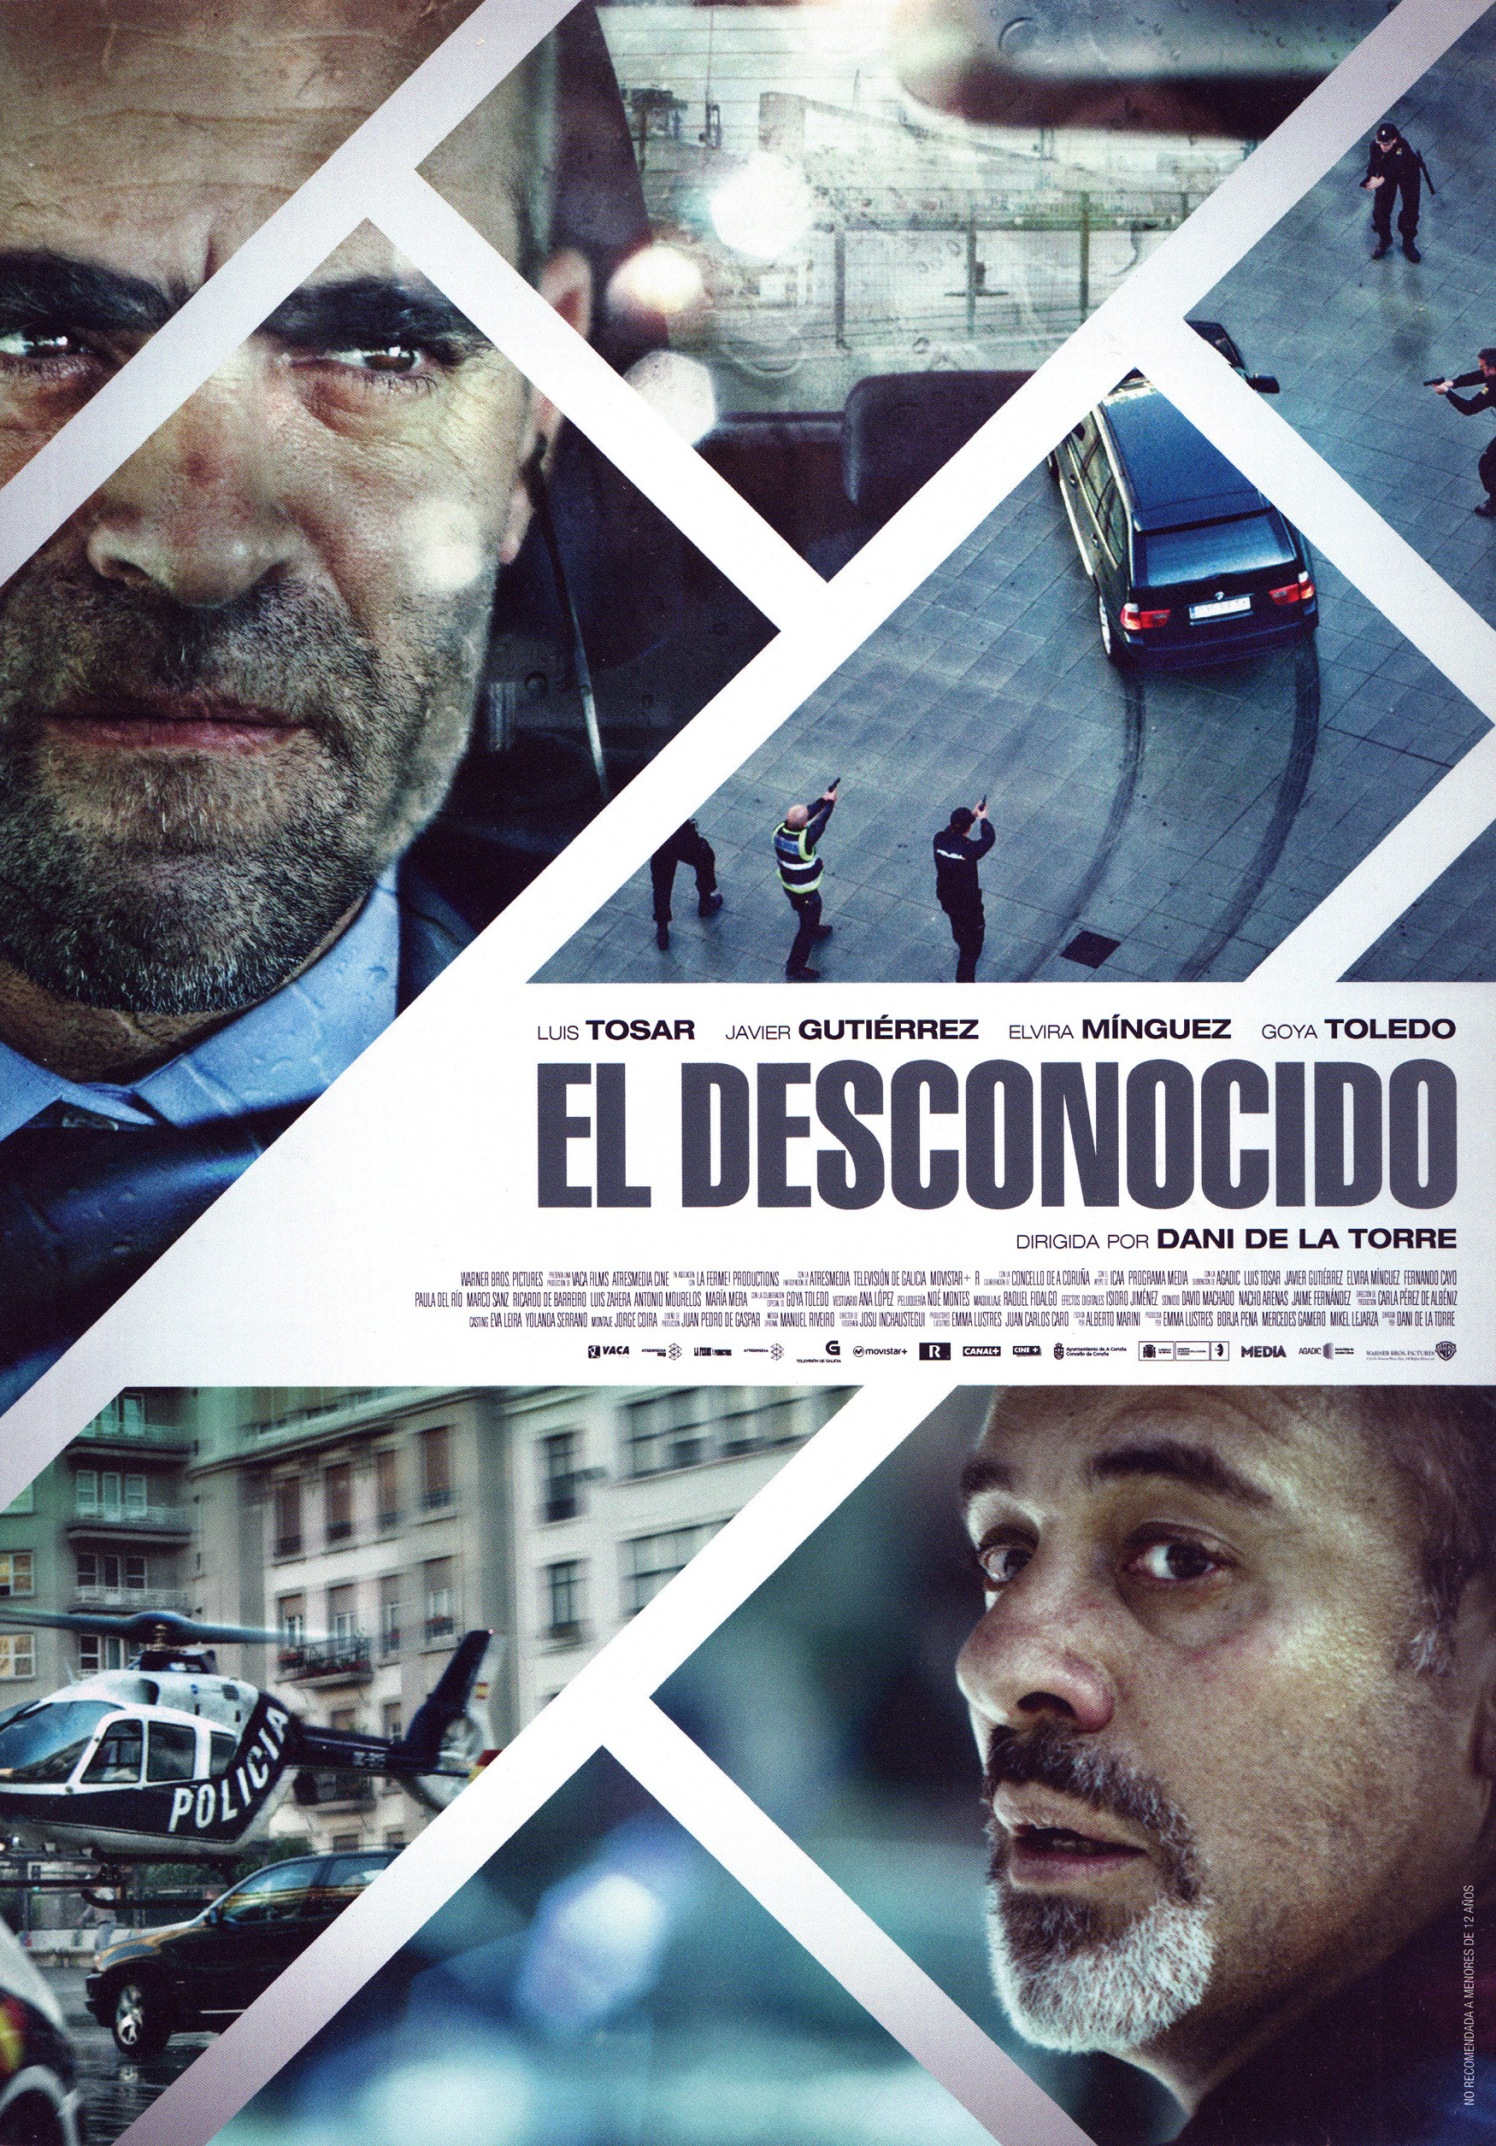 eldesconocido-pressbook-spain-1